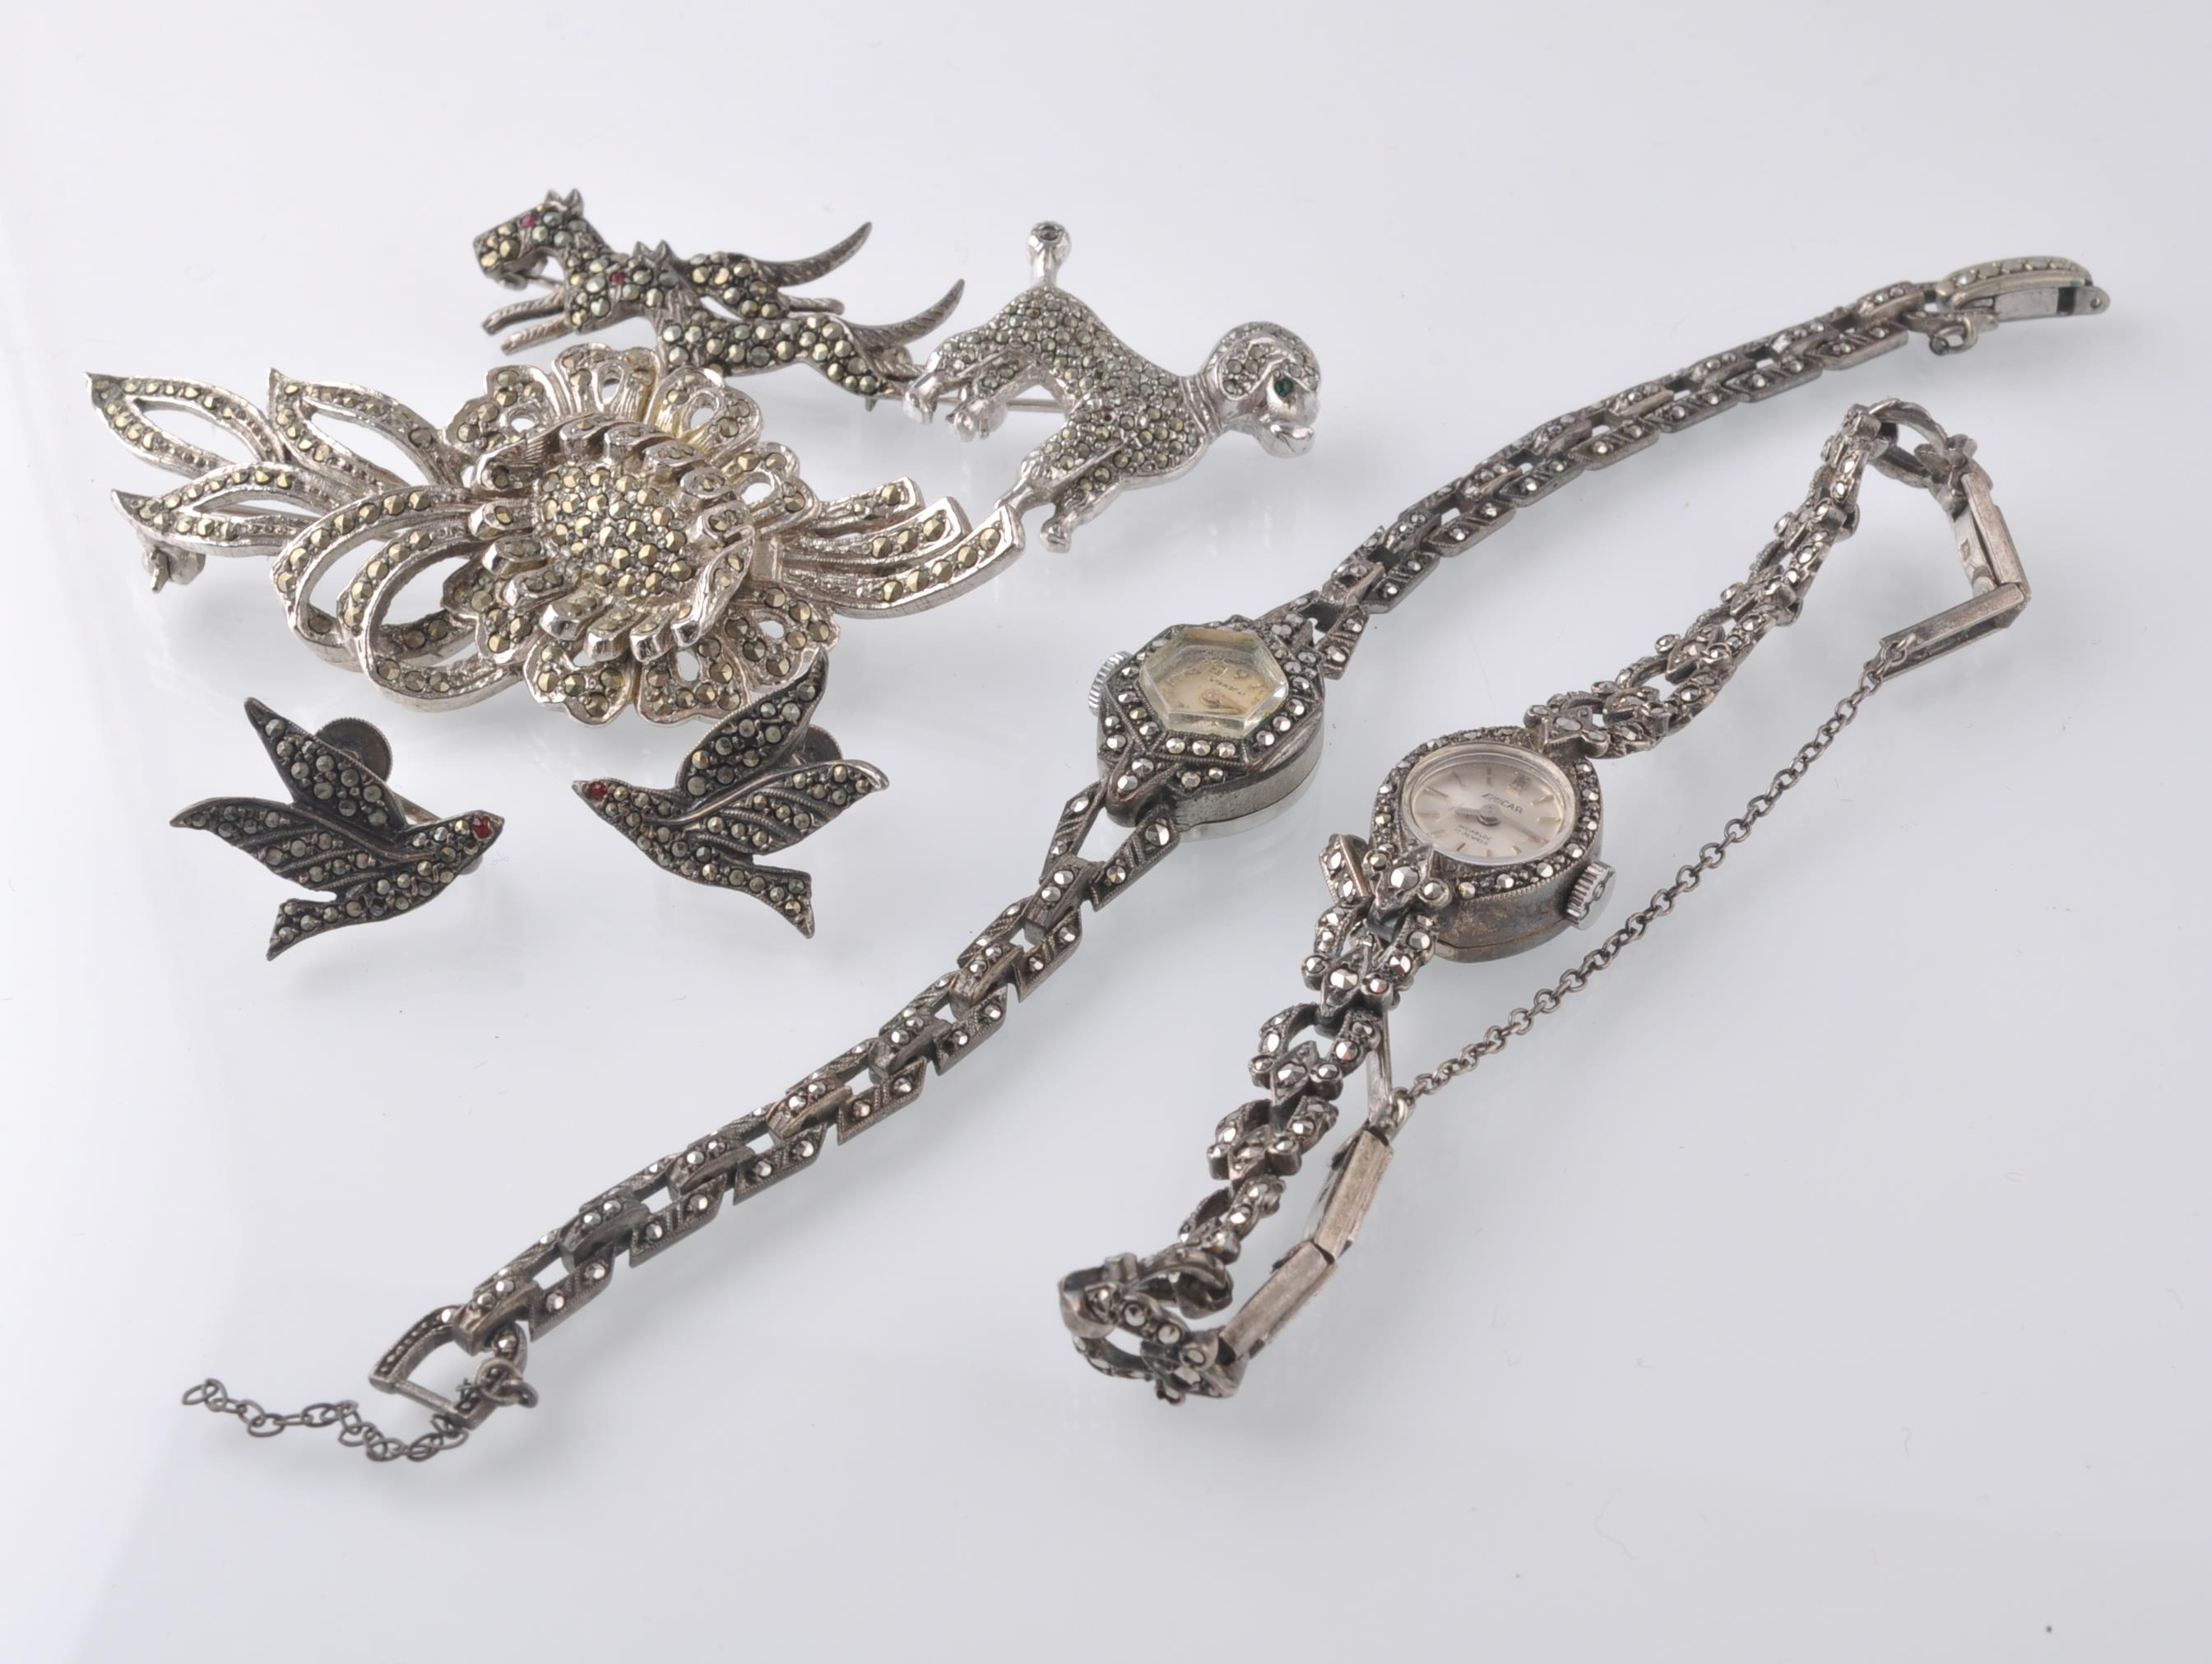 LARGE SELECTION OF SILVER AND WHITE METAL JEWELLER - Image 11 of 13